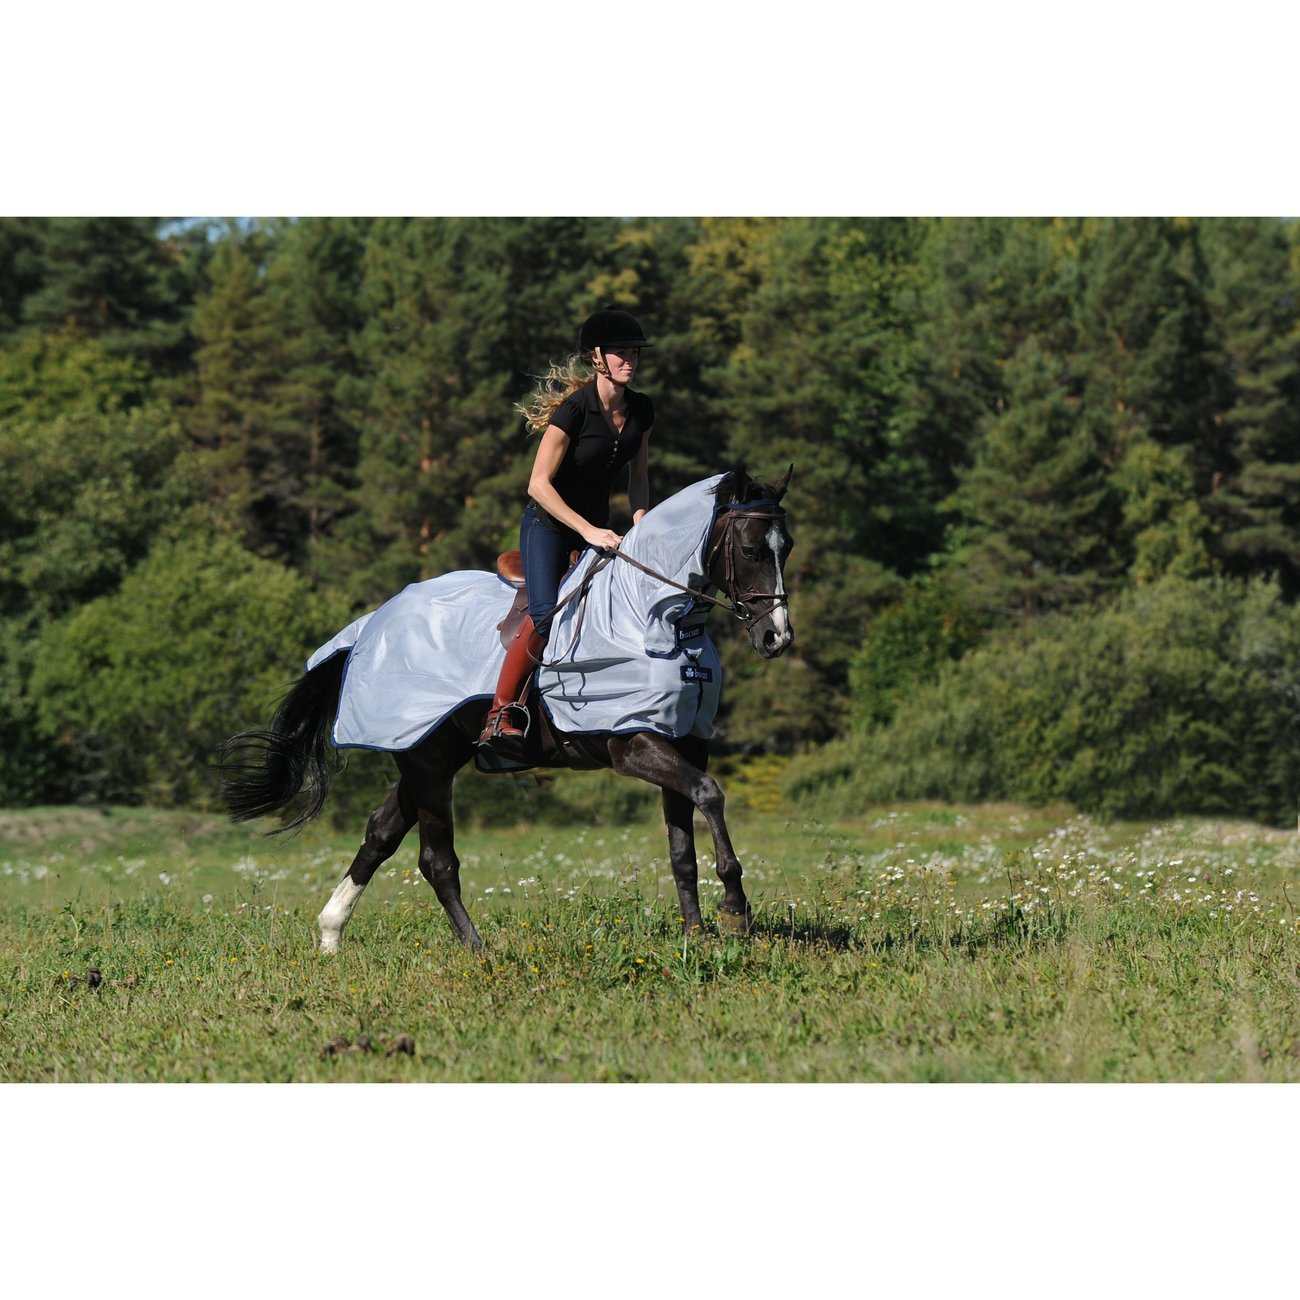 Bucas Ausreit Decke Buzz Off Riding, Gr. 135 cm